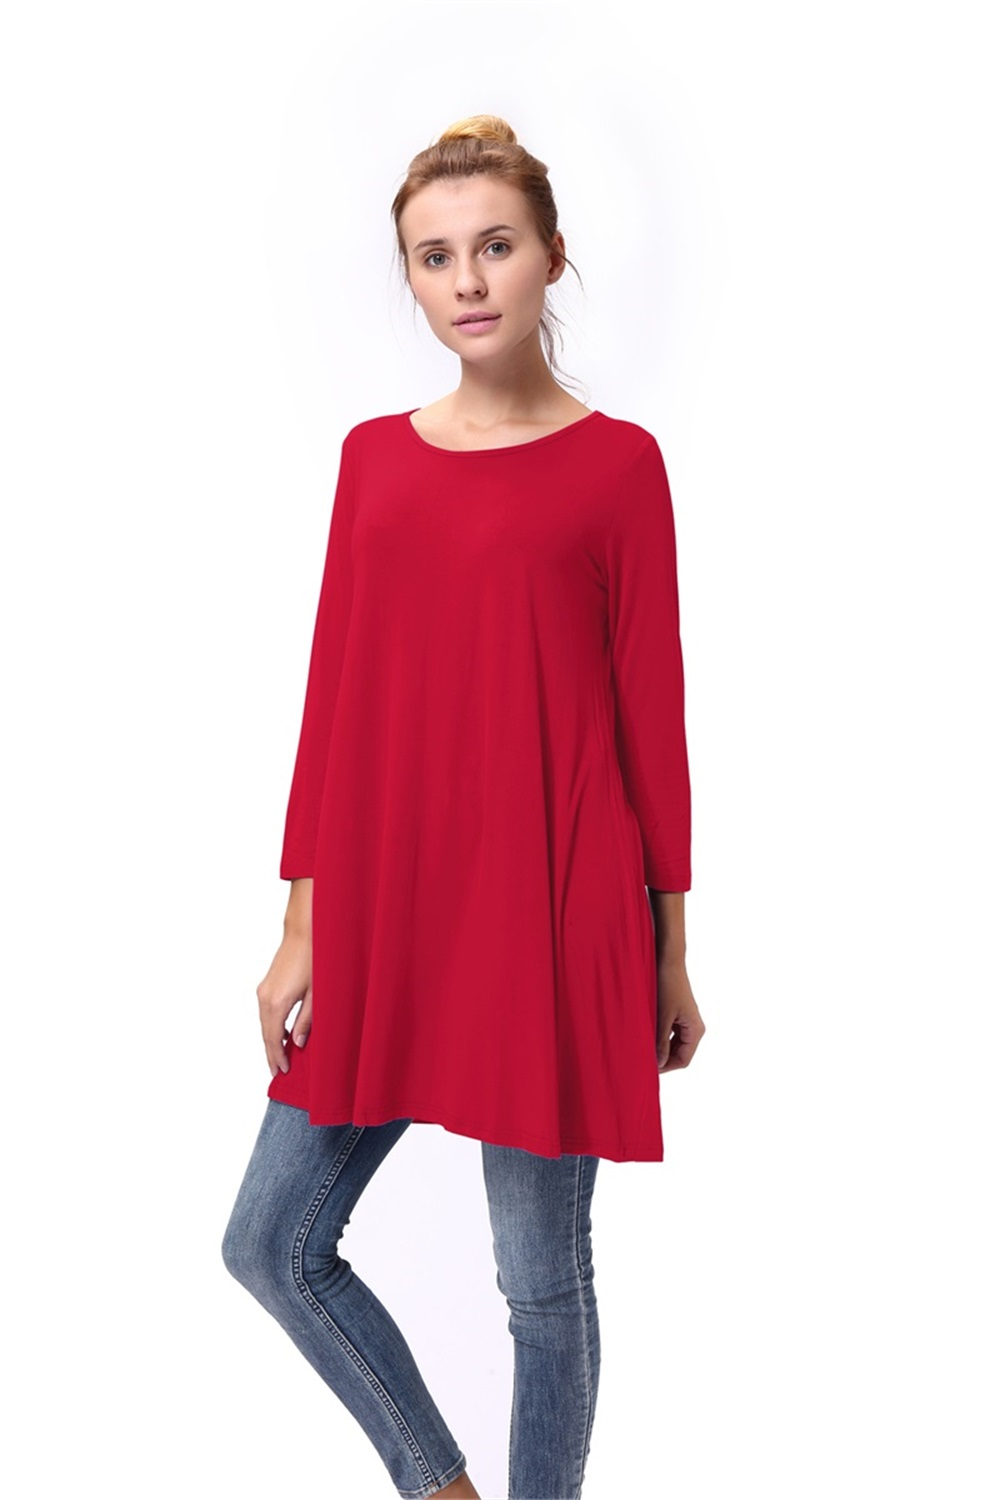 Women-Casual-Round-Neck-3-4-Long-Sleeve-Trapeze-Tunic-Top-Lady-Loose-Fit-Dress thumbnail 11